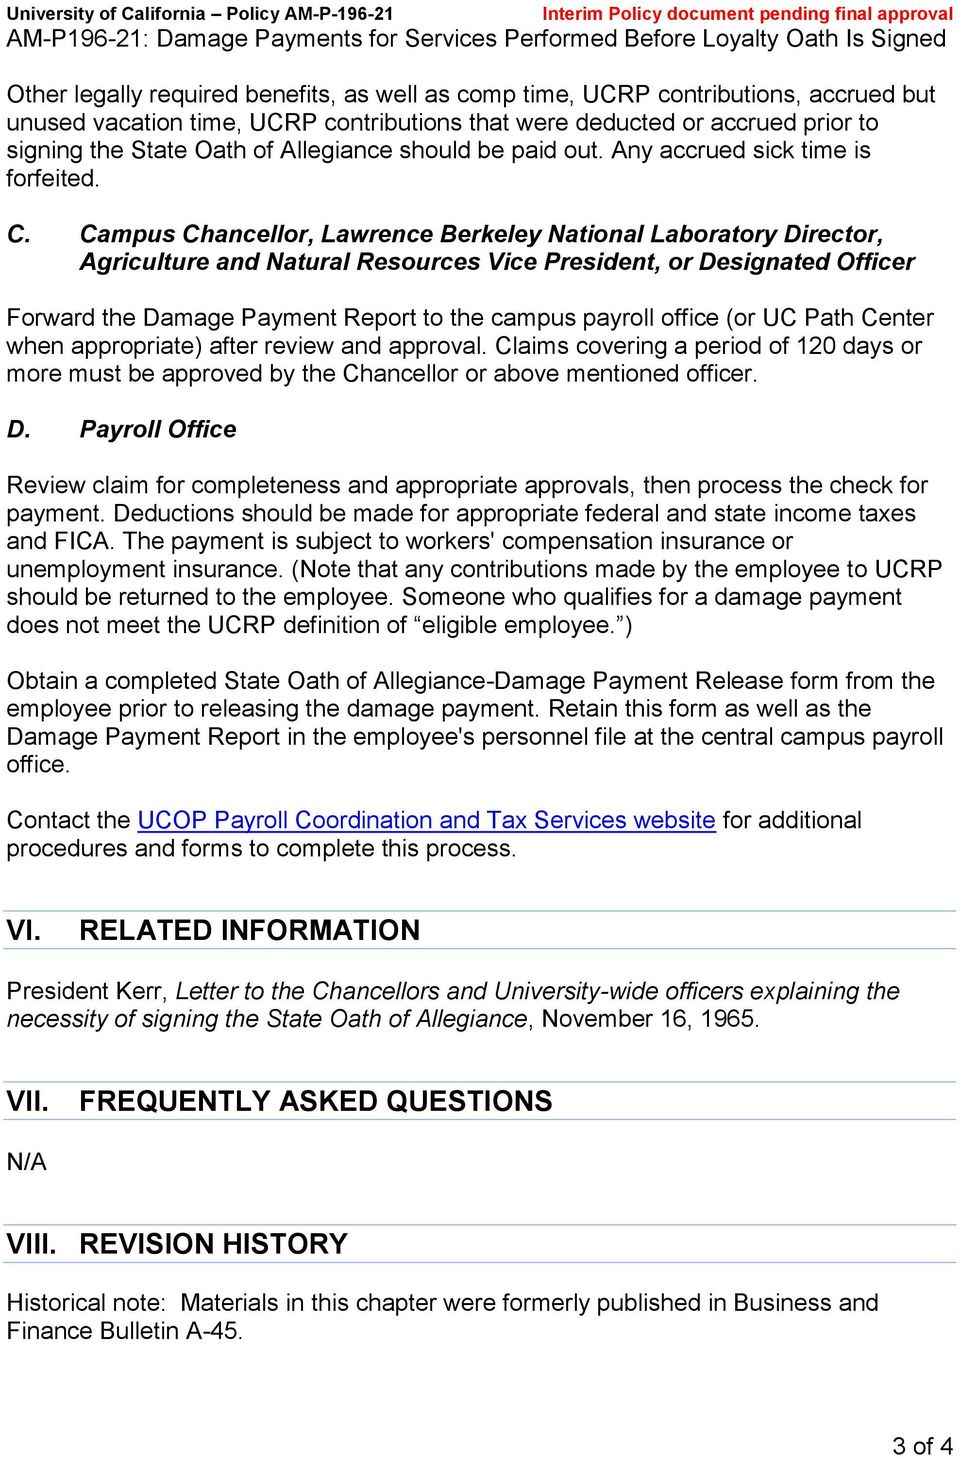 Campus Chancellor, Lawrence Berkeley National Laboratory Director, Agriculture and Natural Resources Vice President, or Designated Officer Forward the Damage Payment Report to the campus payroll